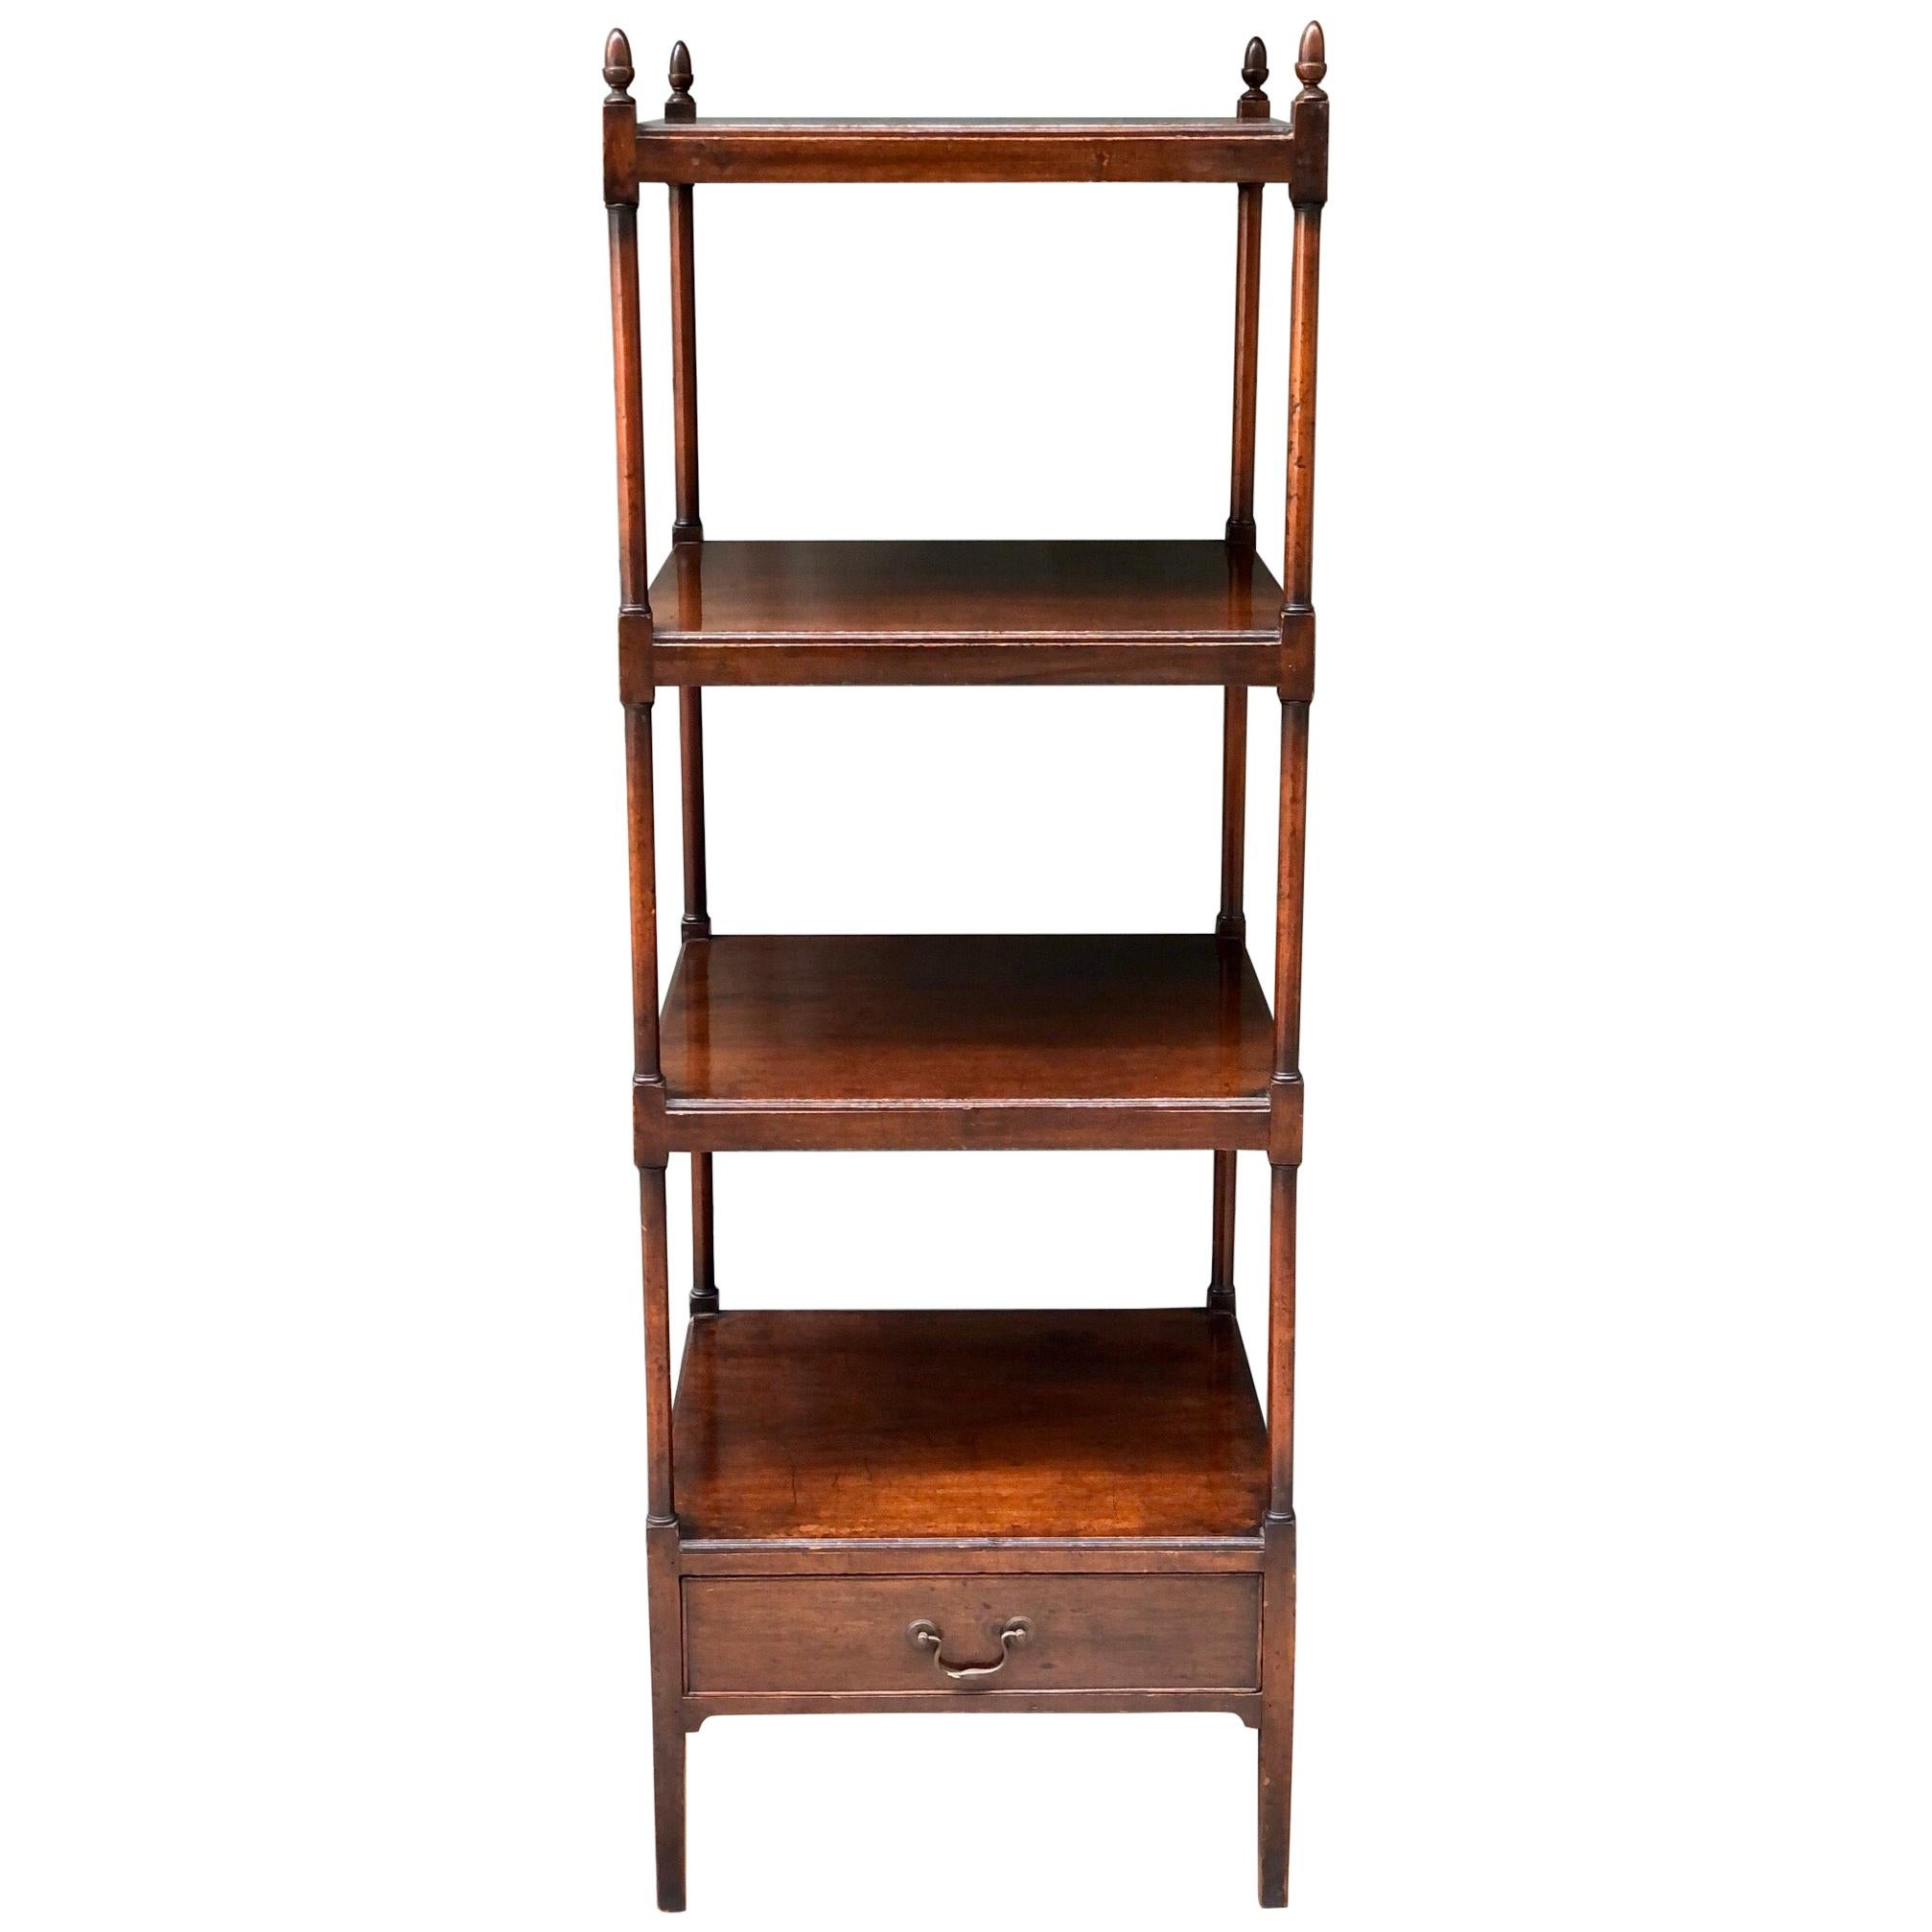 English Regency Mahogany Library Stand / Étagère, Early 19th Century